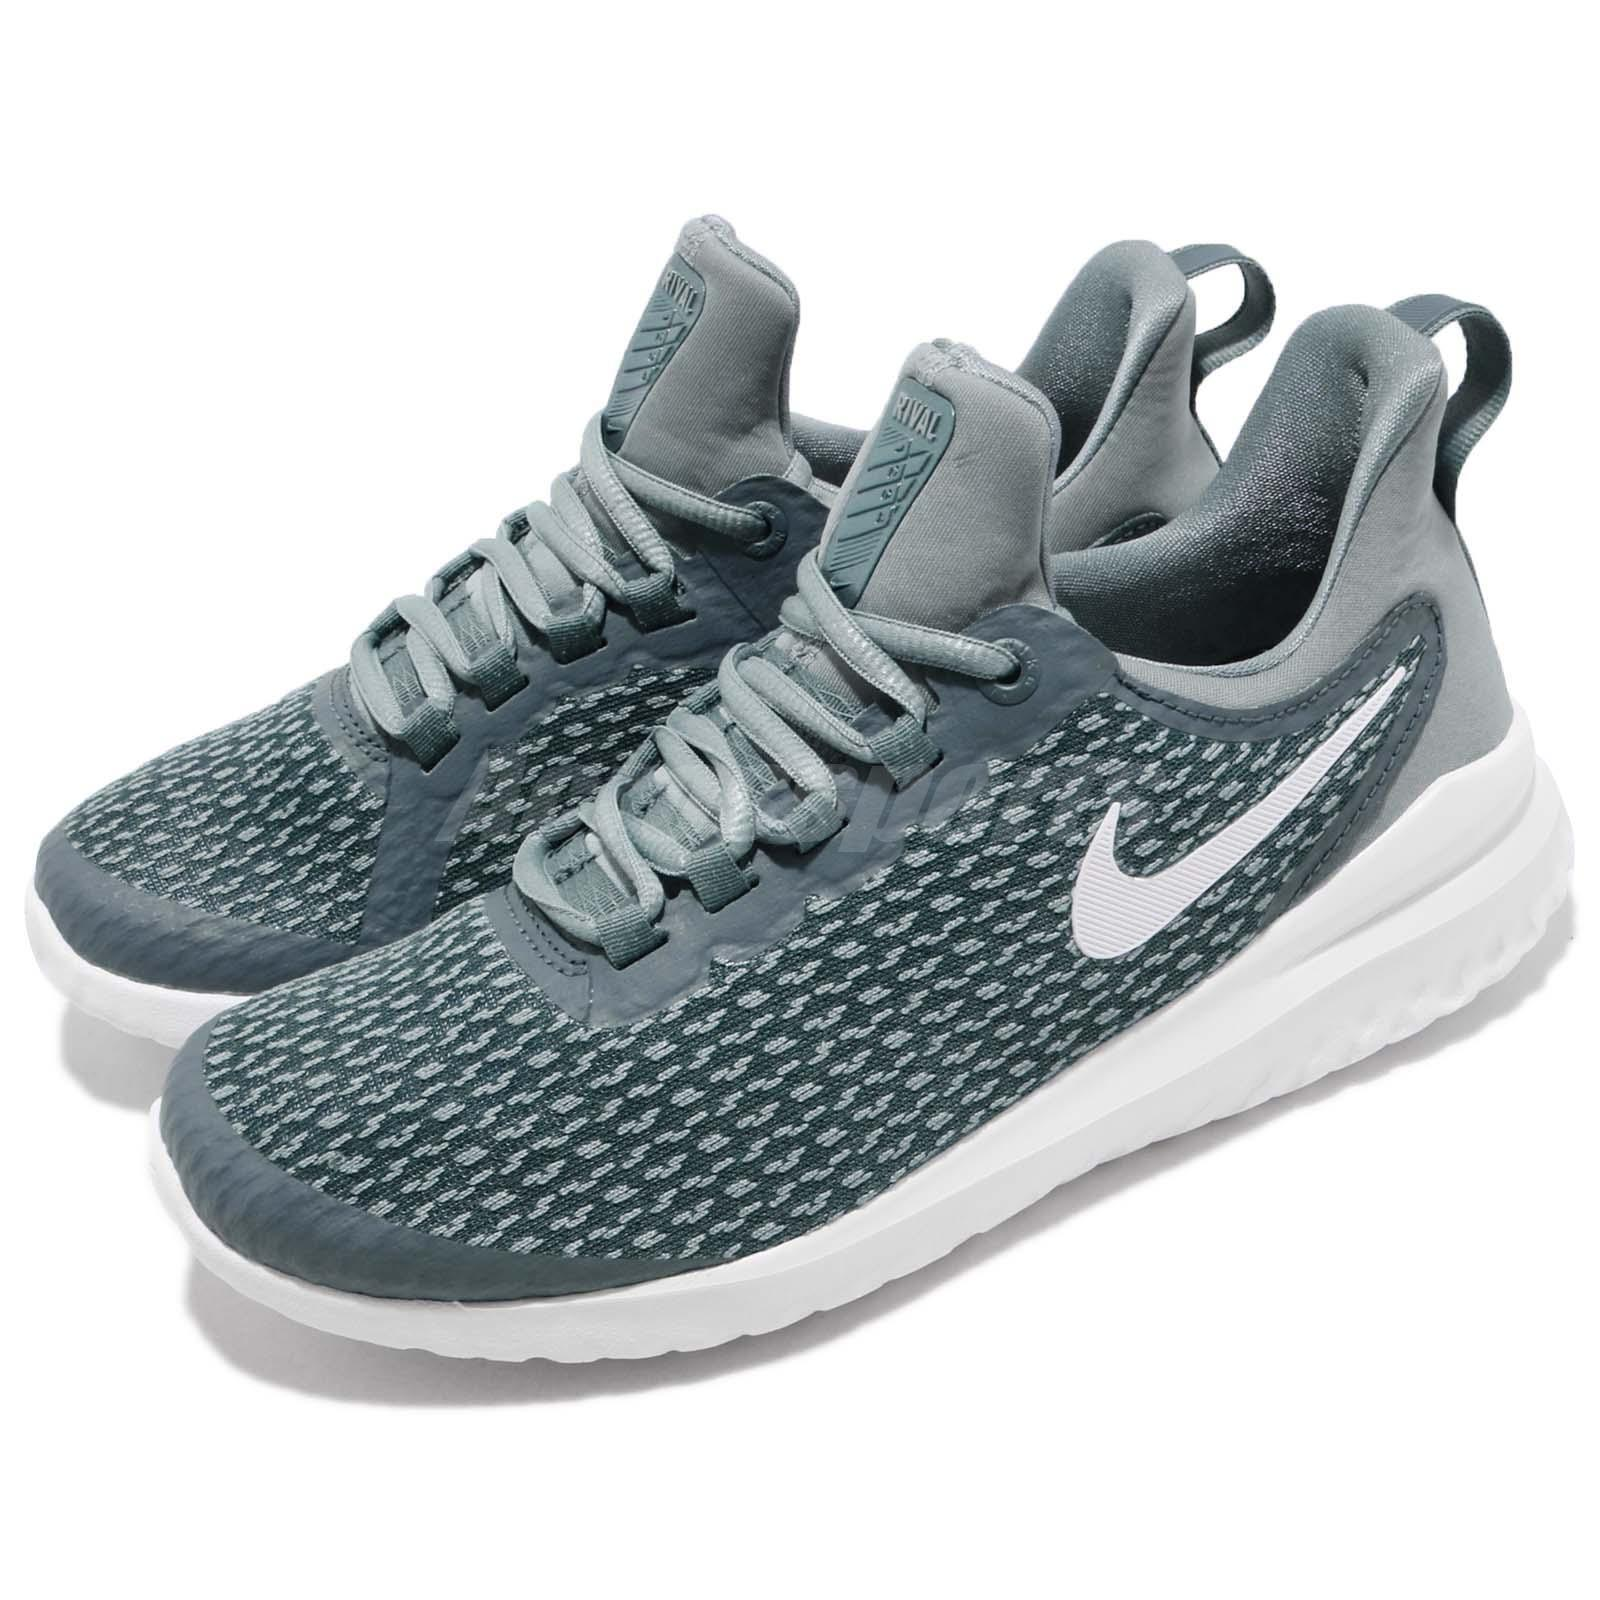 7a4bf29e869 Nike Nike Nike Wmns Renew Rival Aviator Grey White Women Running Shoes  Sneakers AA7411-005 53b54a